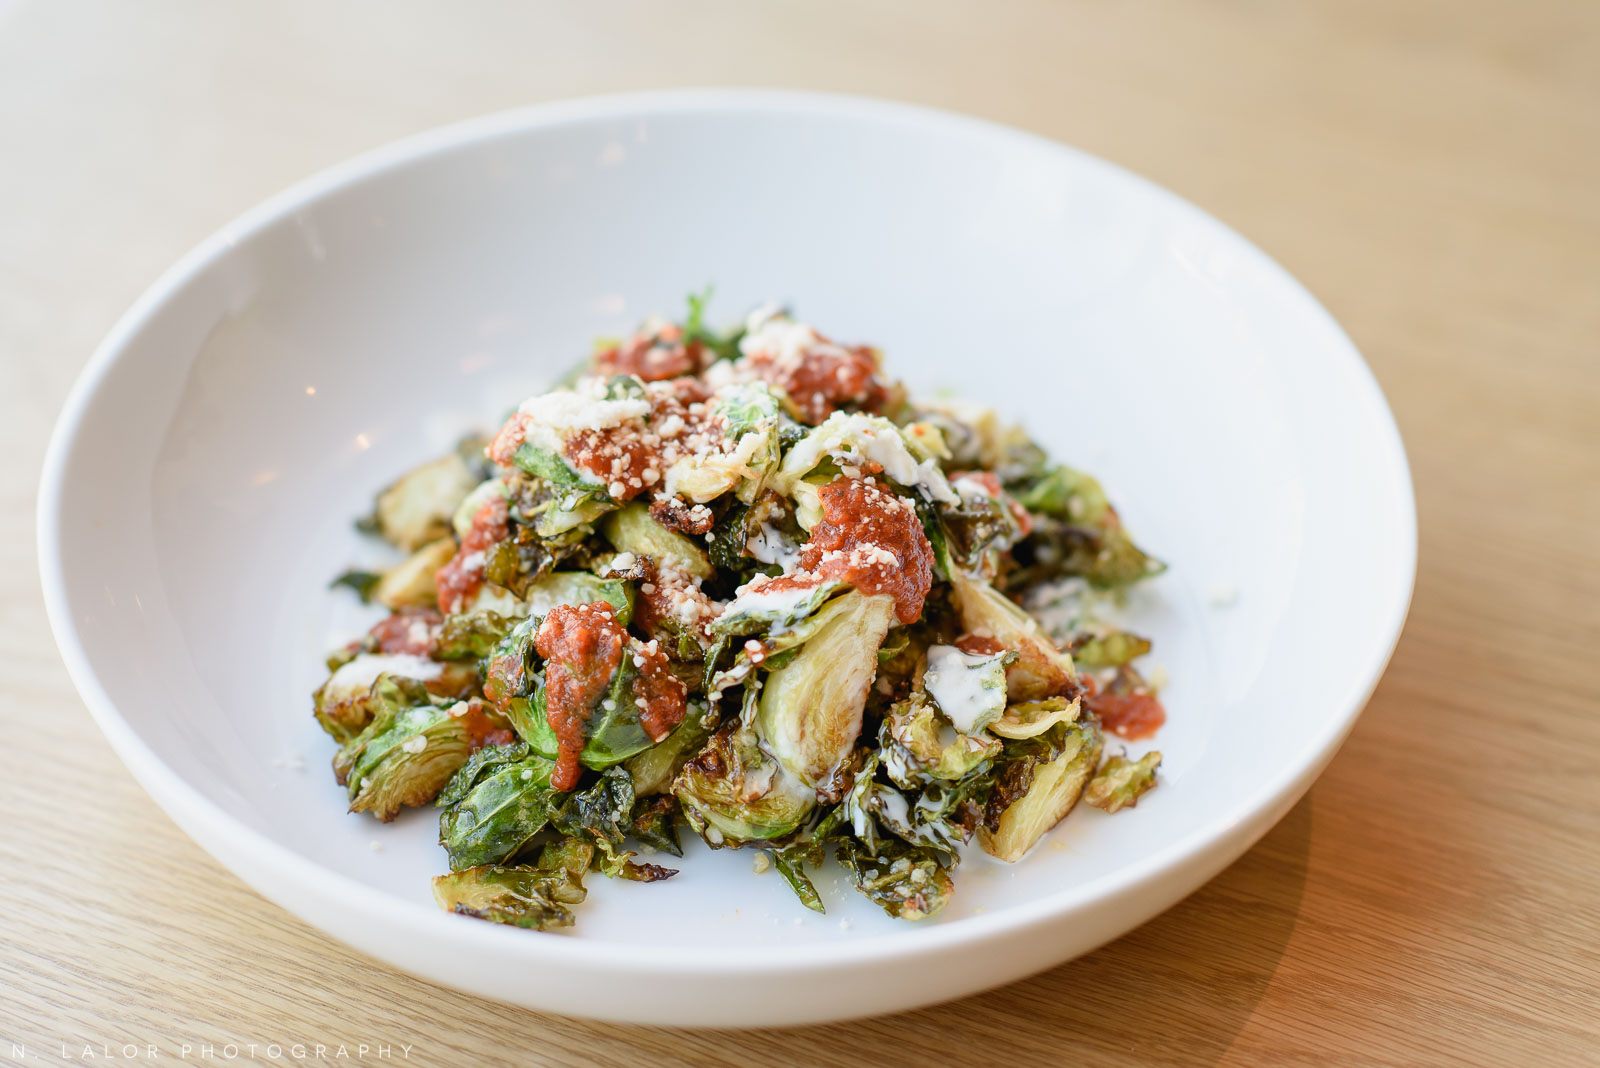 Roasted brussels sprouts. Roost Darien, small business photos by N. Lalor Photography.